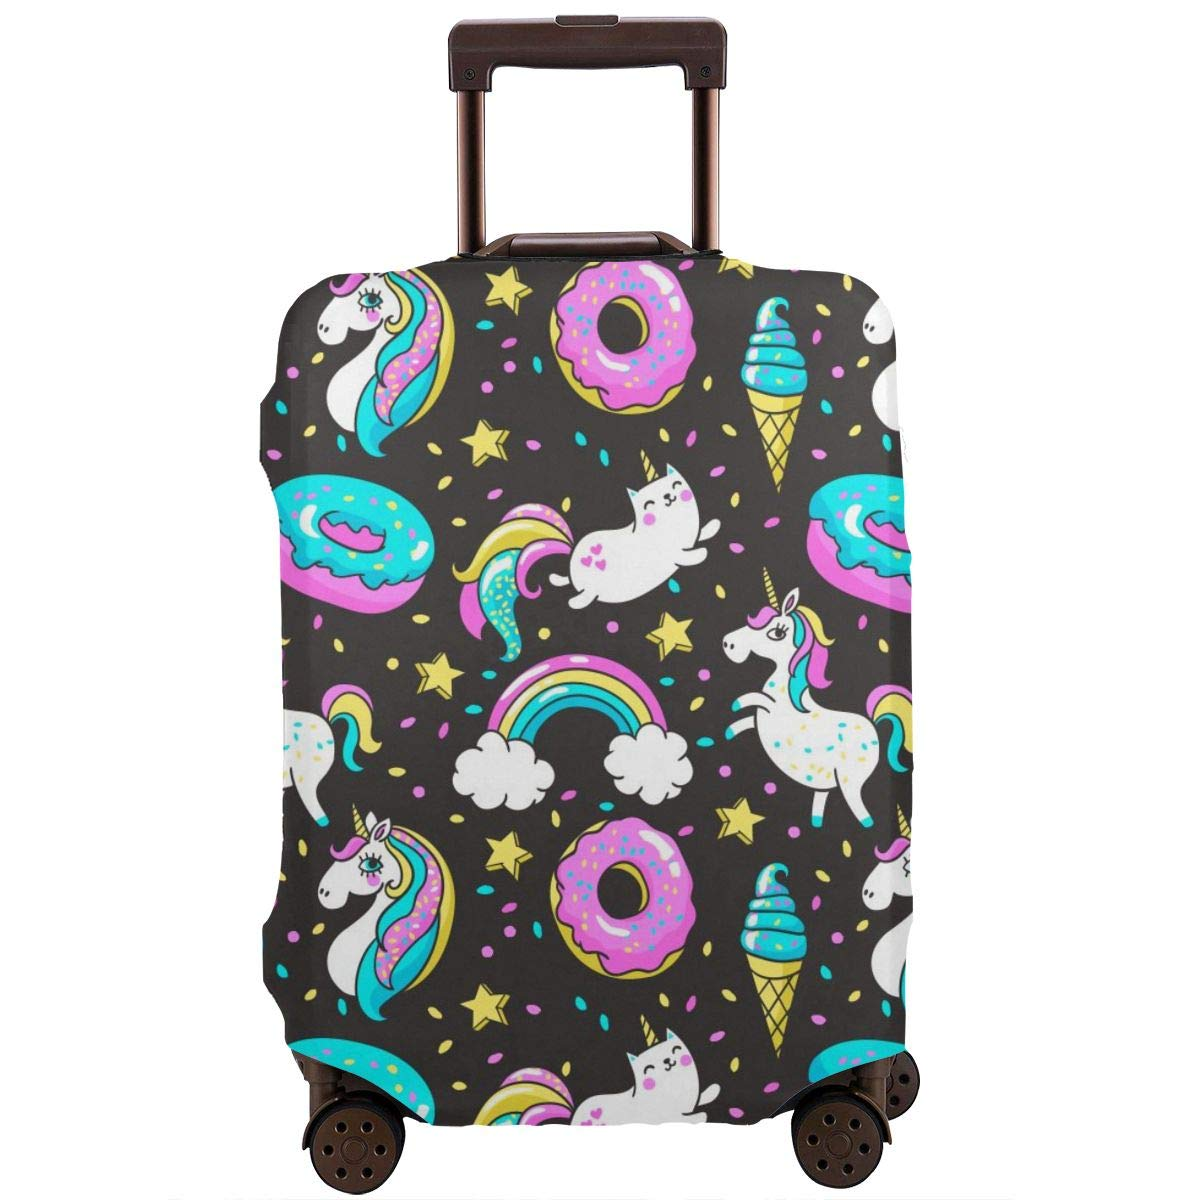 Donuts Rainbow Unicorns Cat Travel Luggage Cover Spandex Washable Suitcase Protector Baggage Covers Fits 18 To 32 Inch